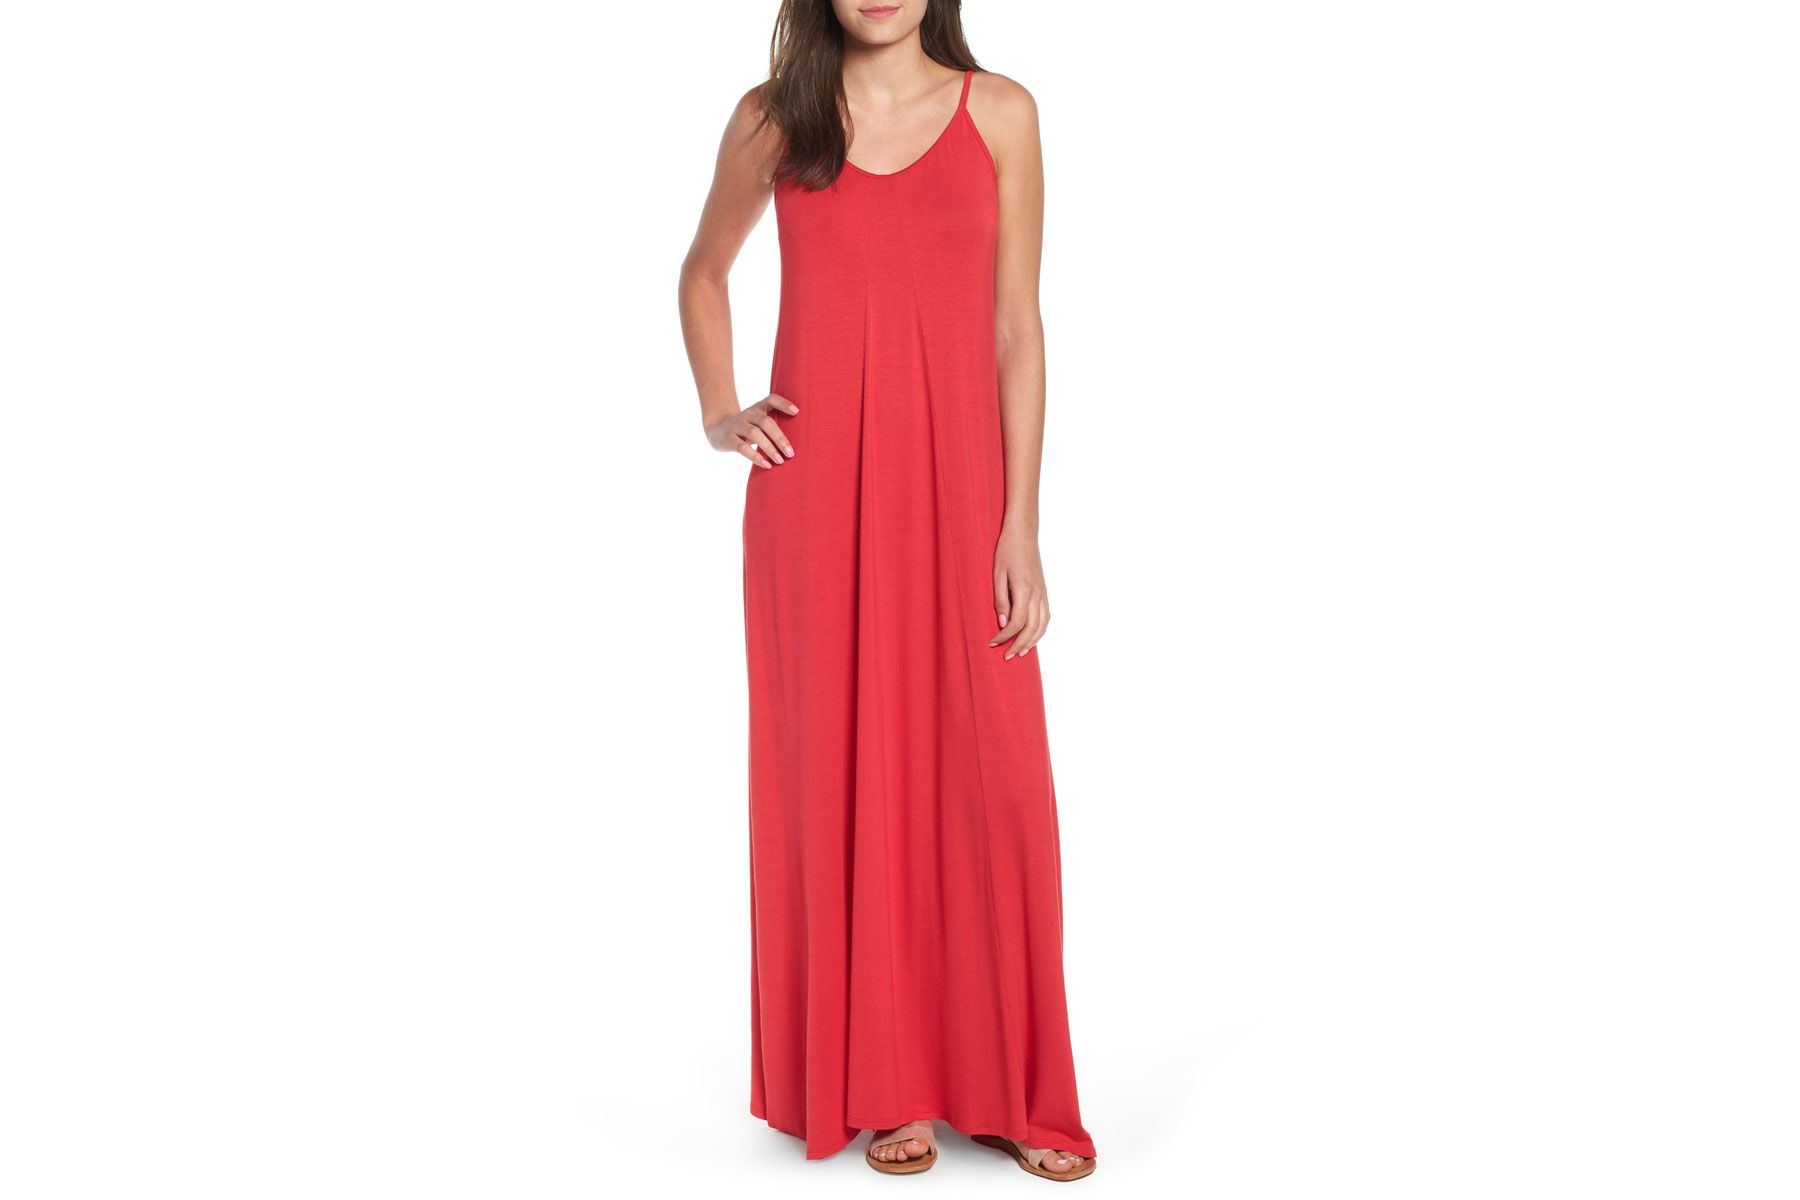 Woman wearing red maxi dress